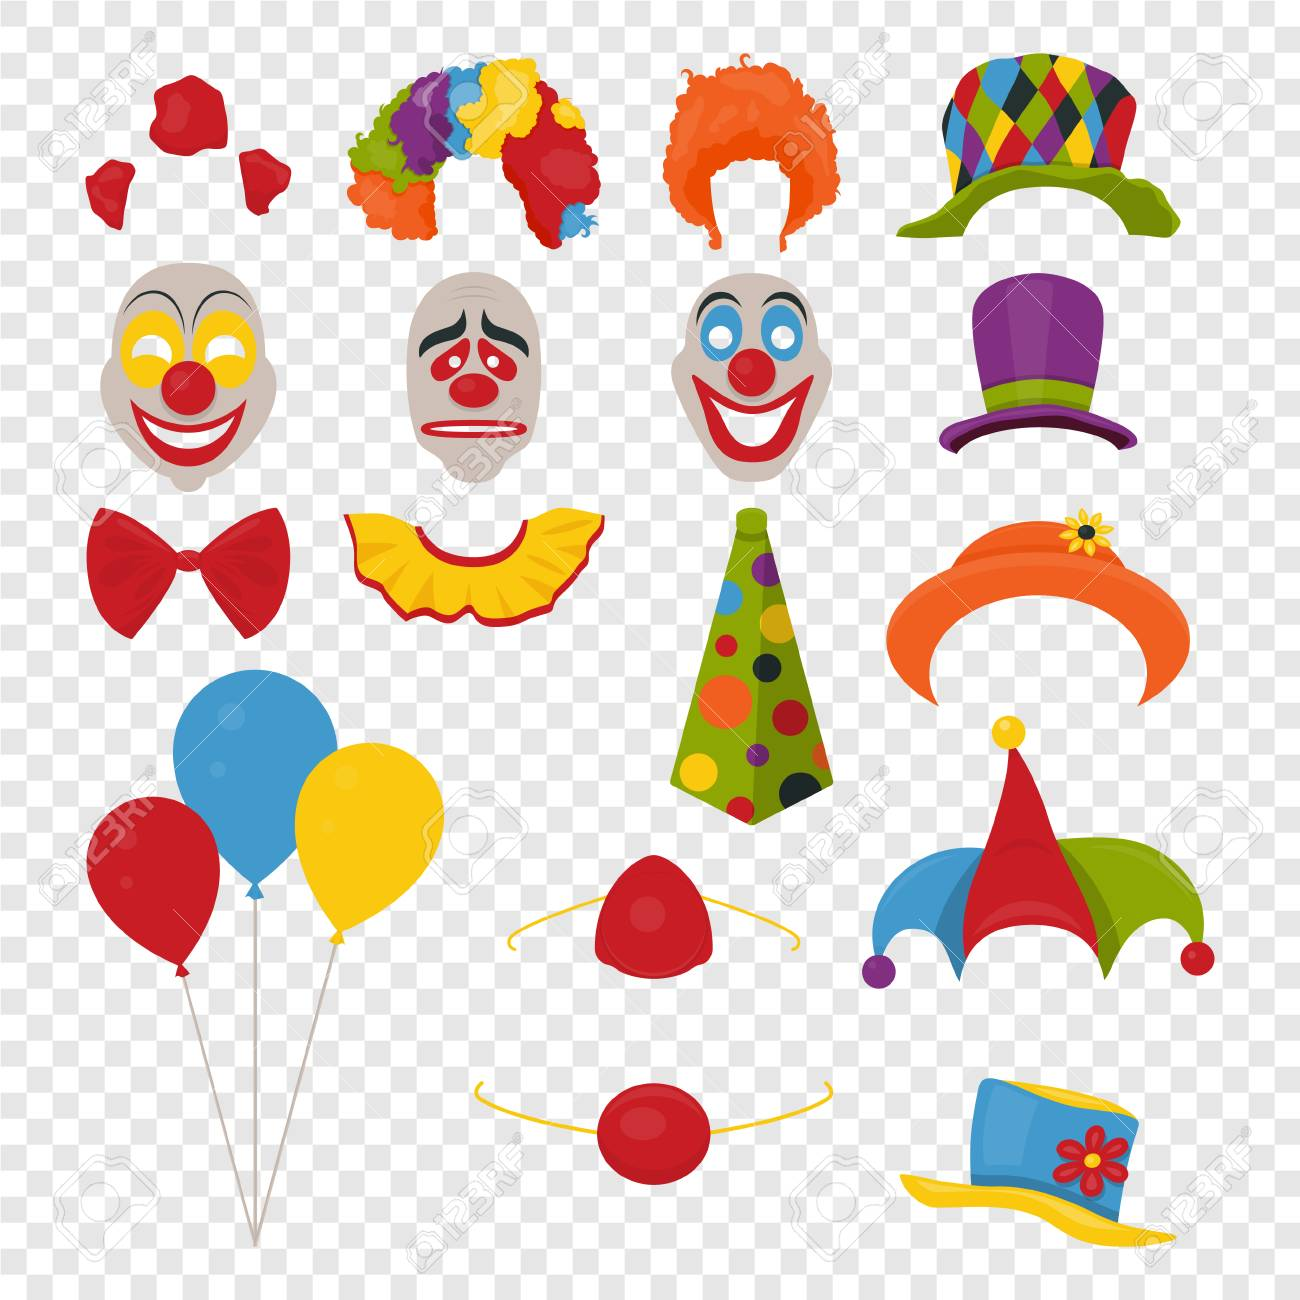 vector vector party birthday or april fools day photo booth props hats wigs neckties clown noses masks balloons and cylinder icon set isolated on